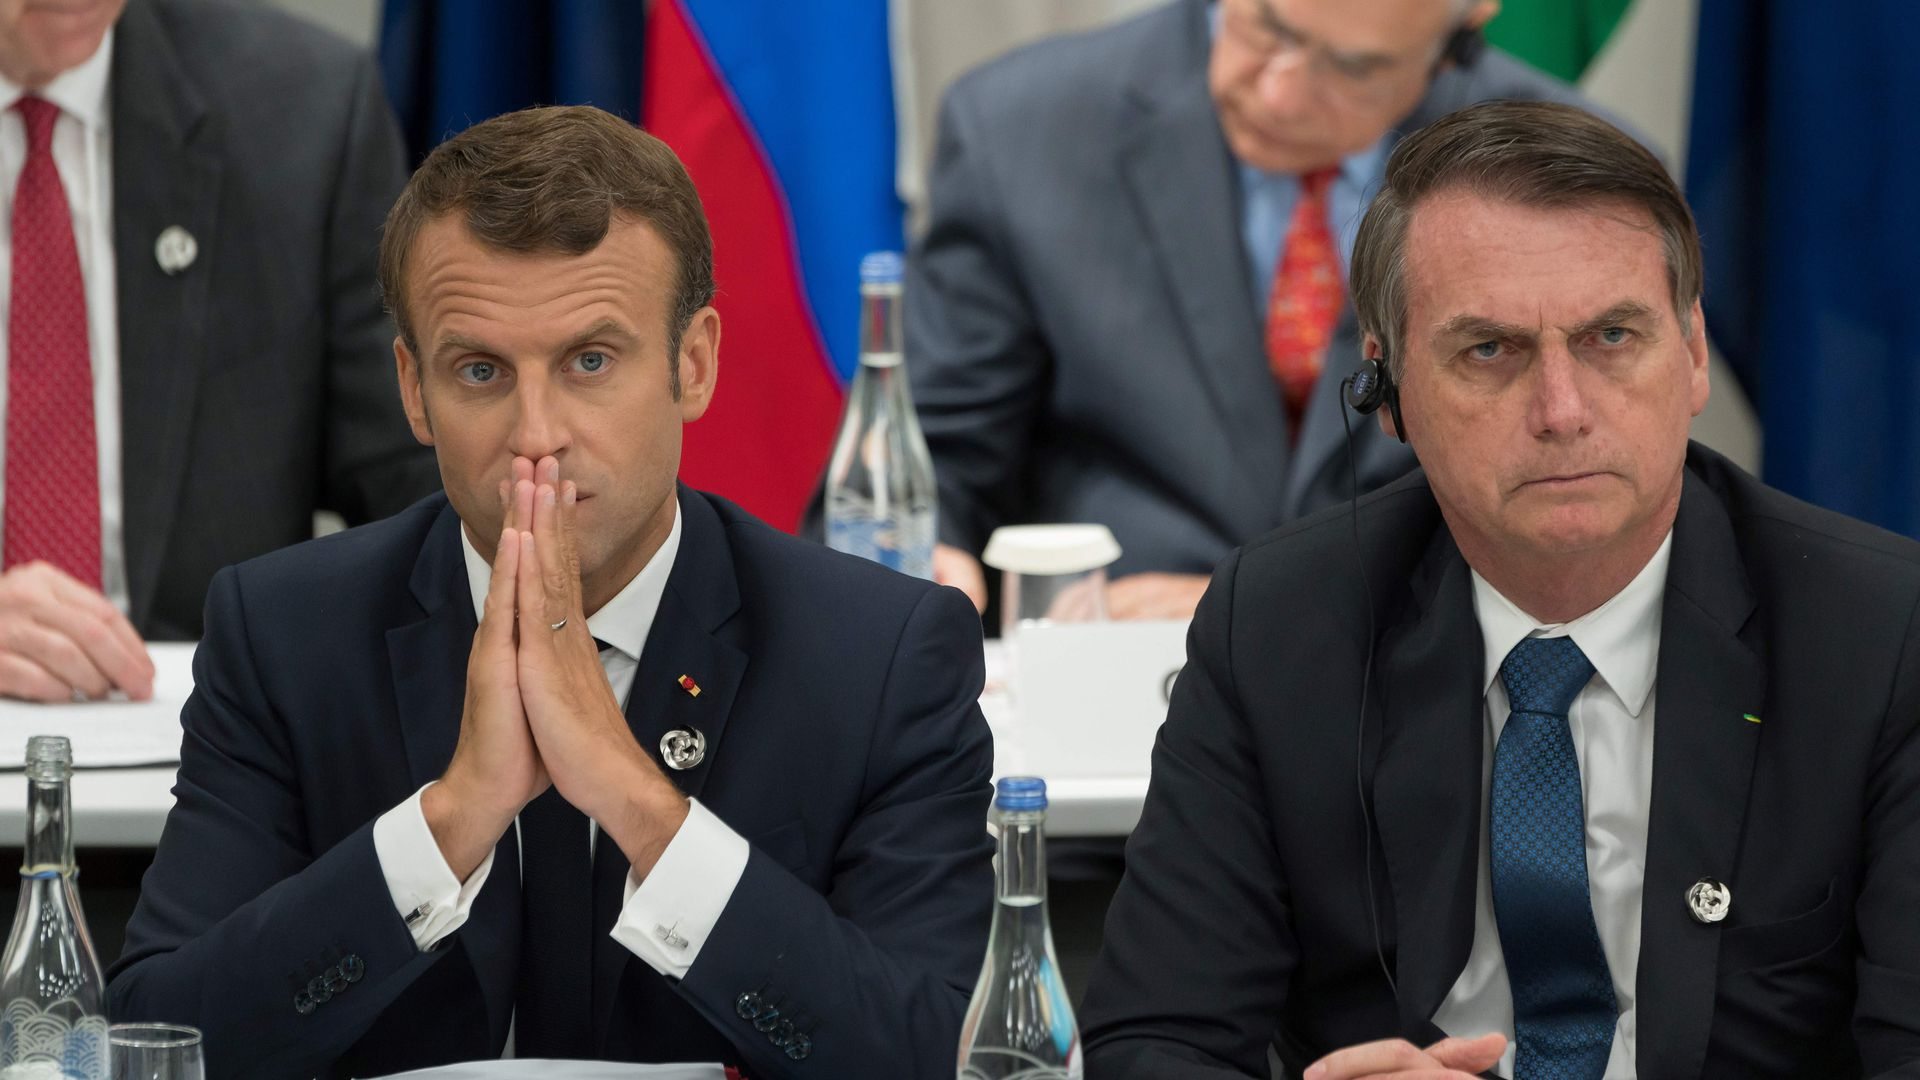 France's President Emmanuel Macron (L) and Brazil's President Jair Bolsonaro attend a meeting on the digital economy at the G20 Summit in Osaka on June 28, 2019.